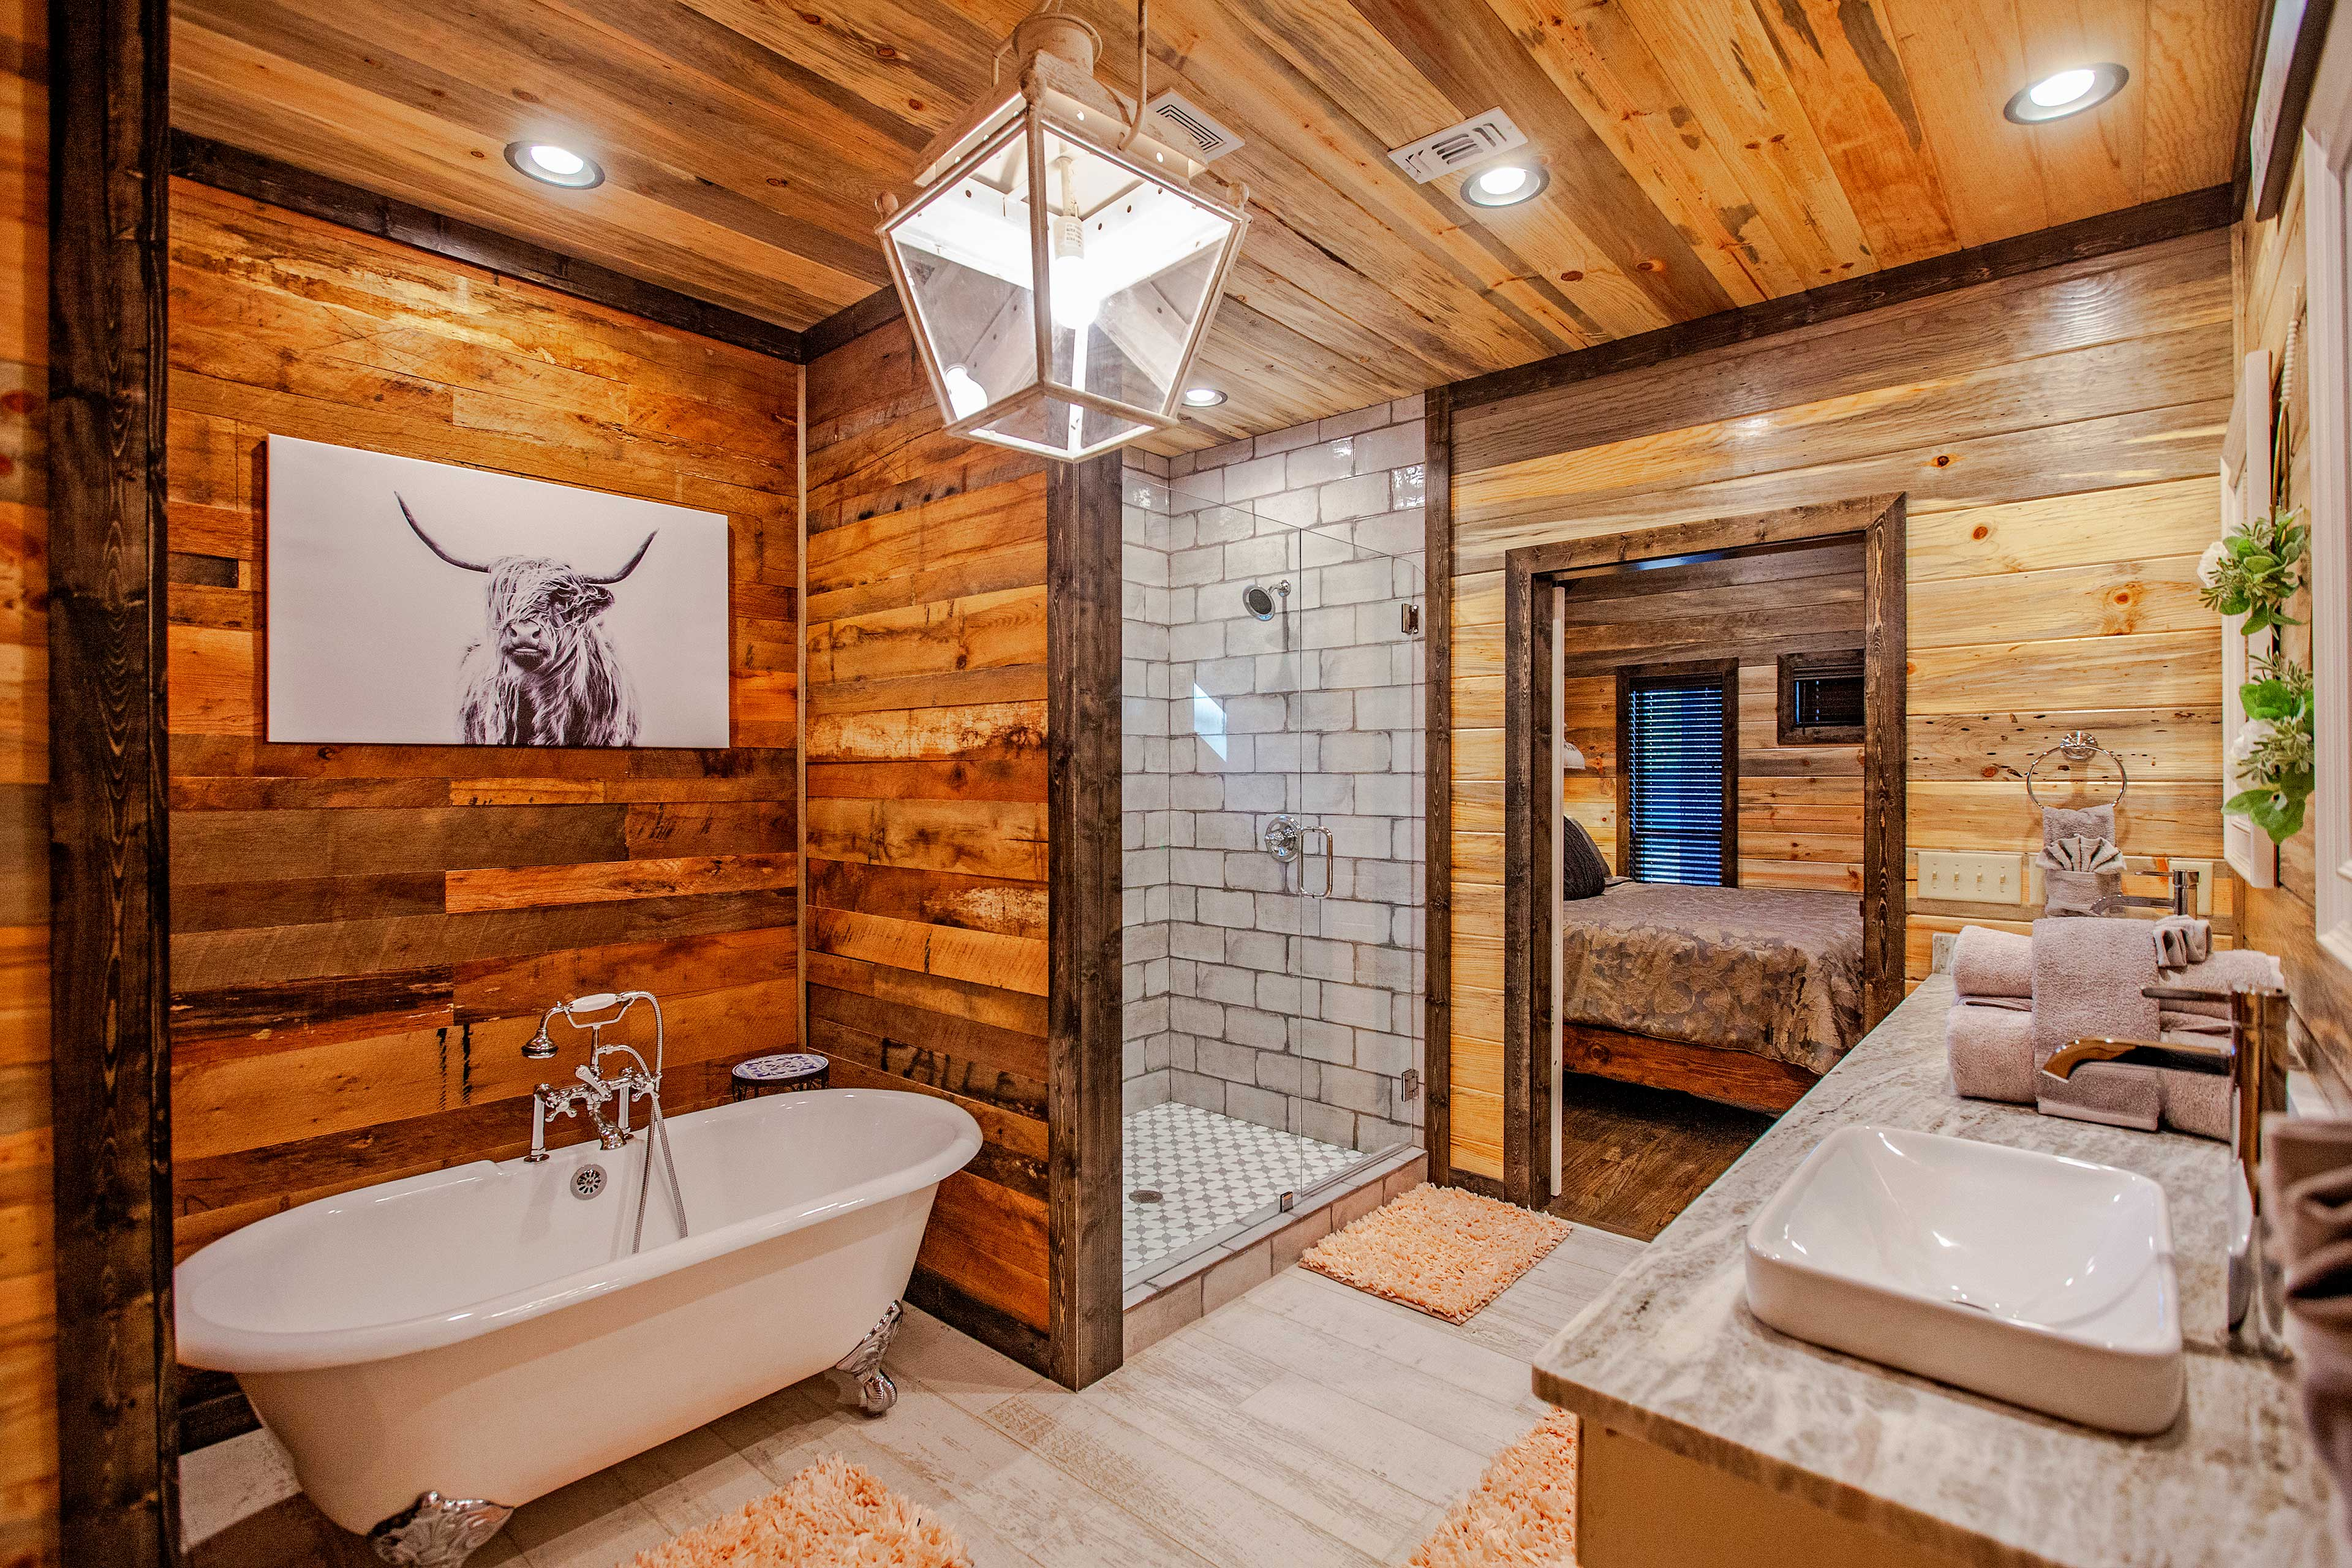 Rinse off in this lavish walk-in shower with glass doors.